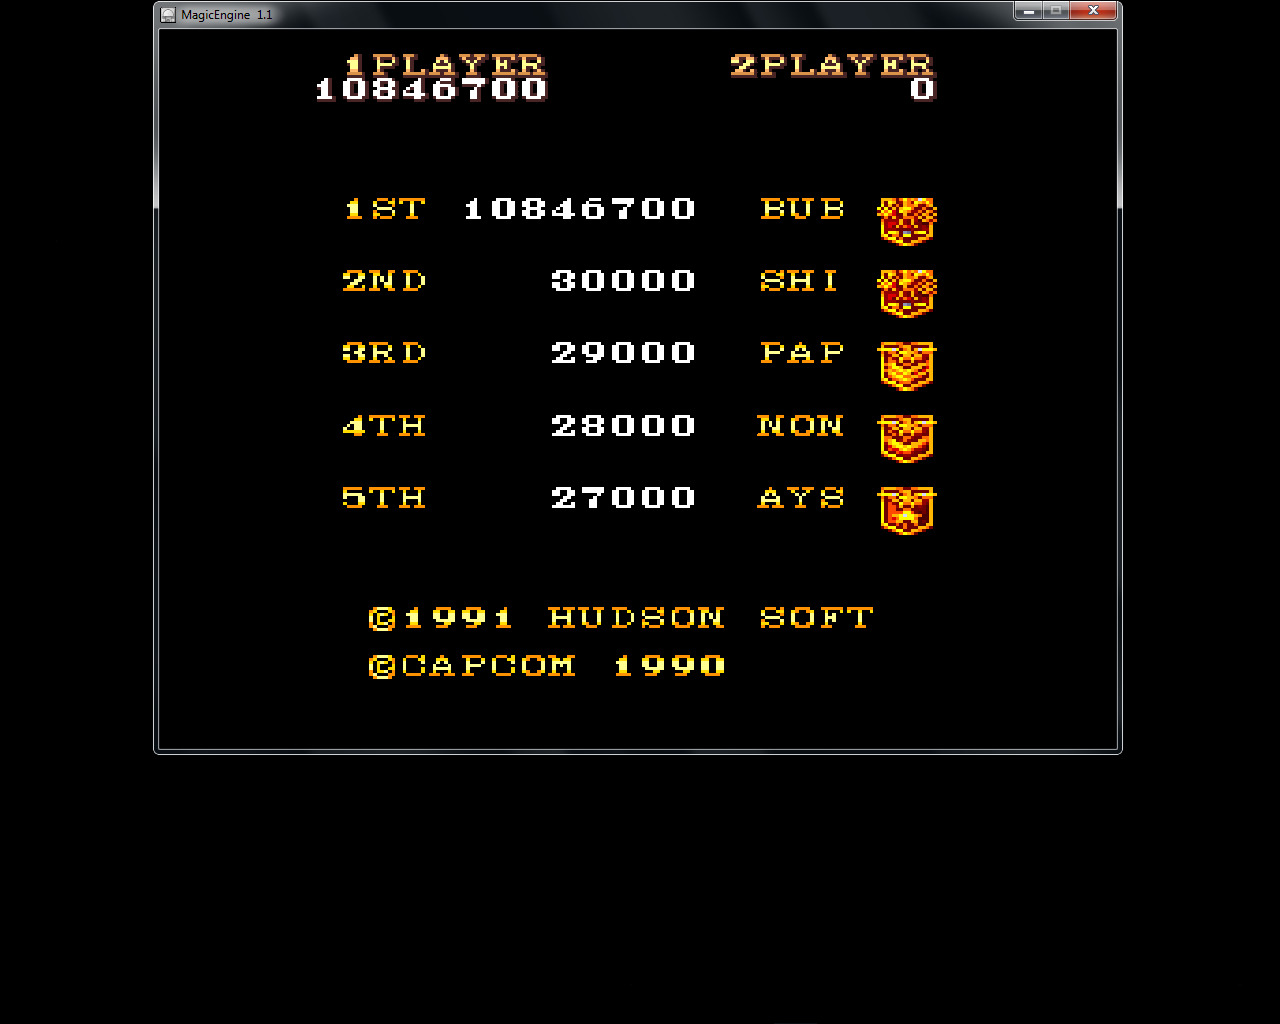 bubufubu: 1941: Counter Attack (TurboGrafx-16/PC Engine Emulated) 10,846,700 points on 2015-08-13 17:56:08